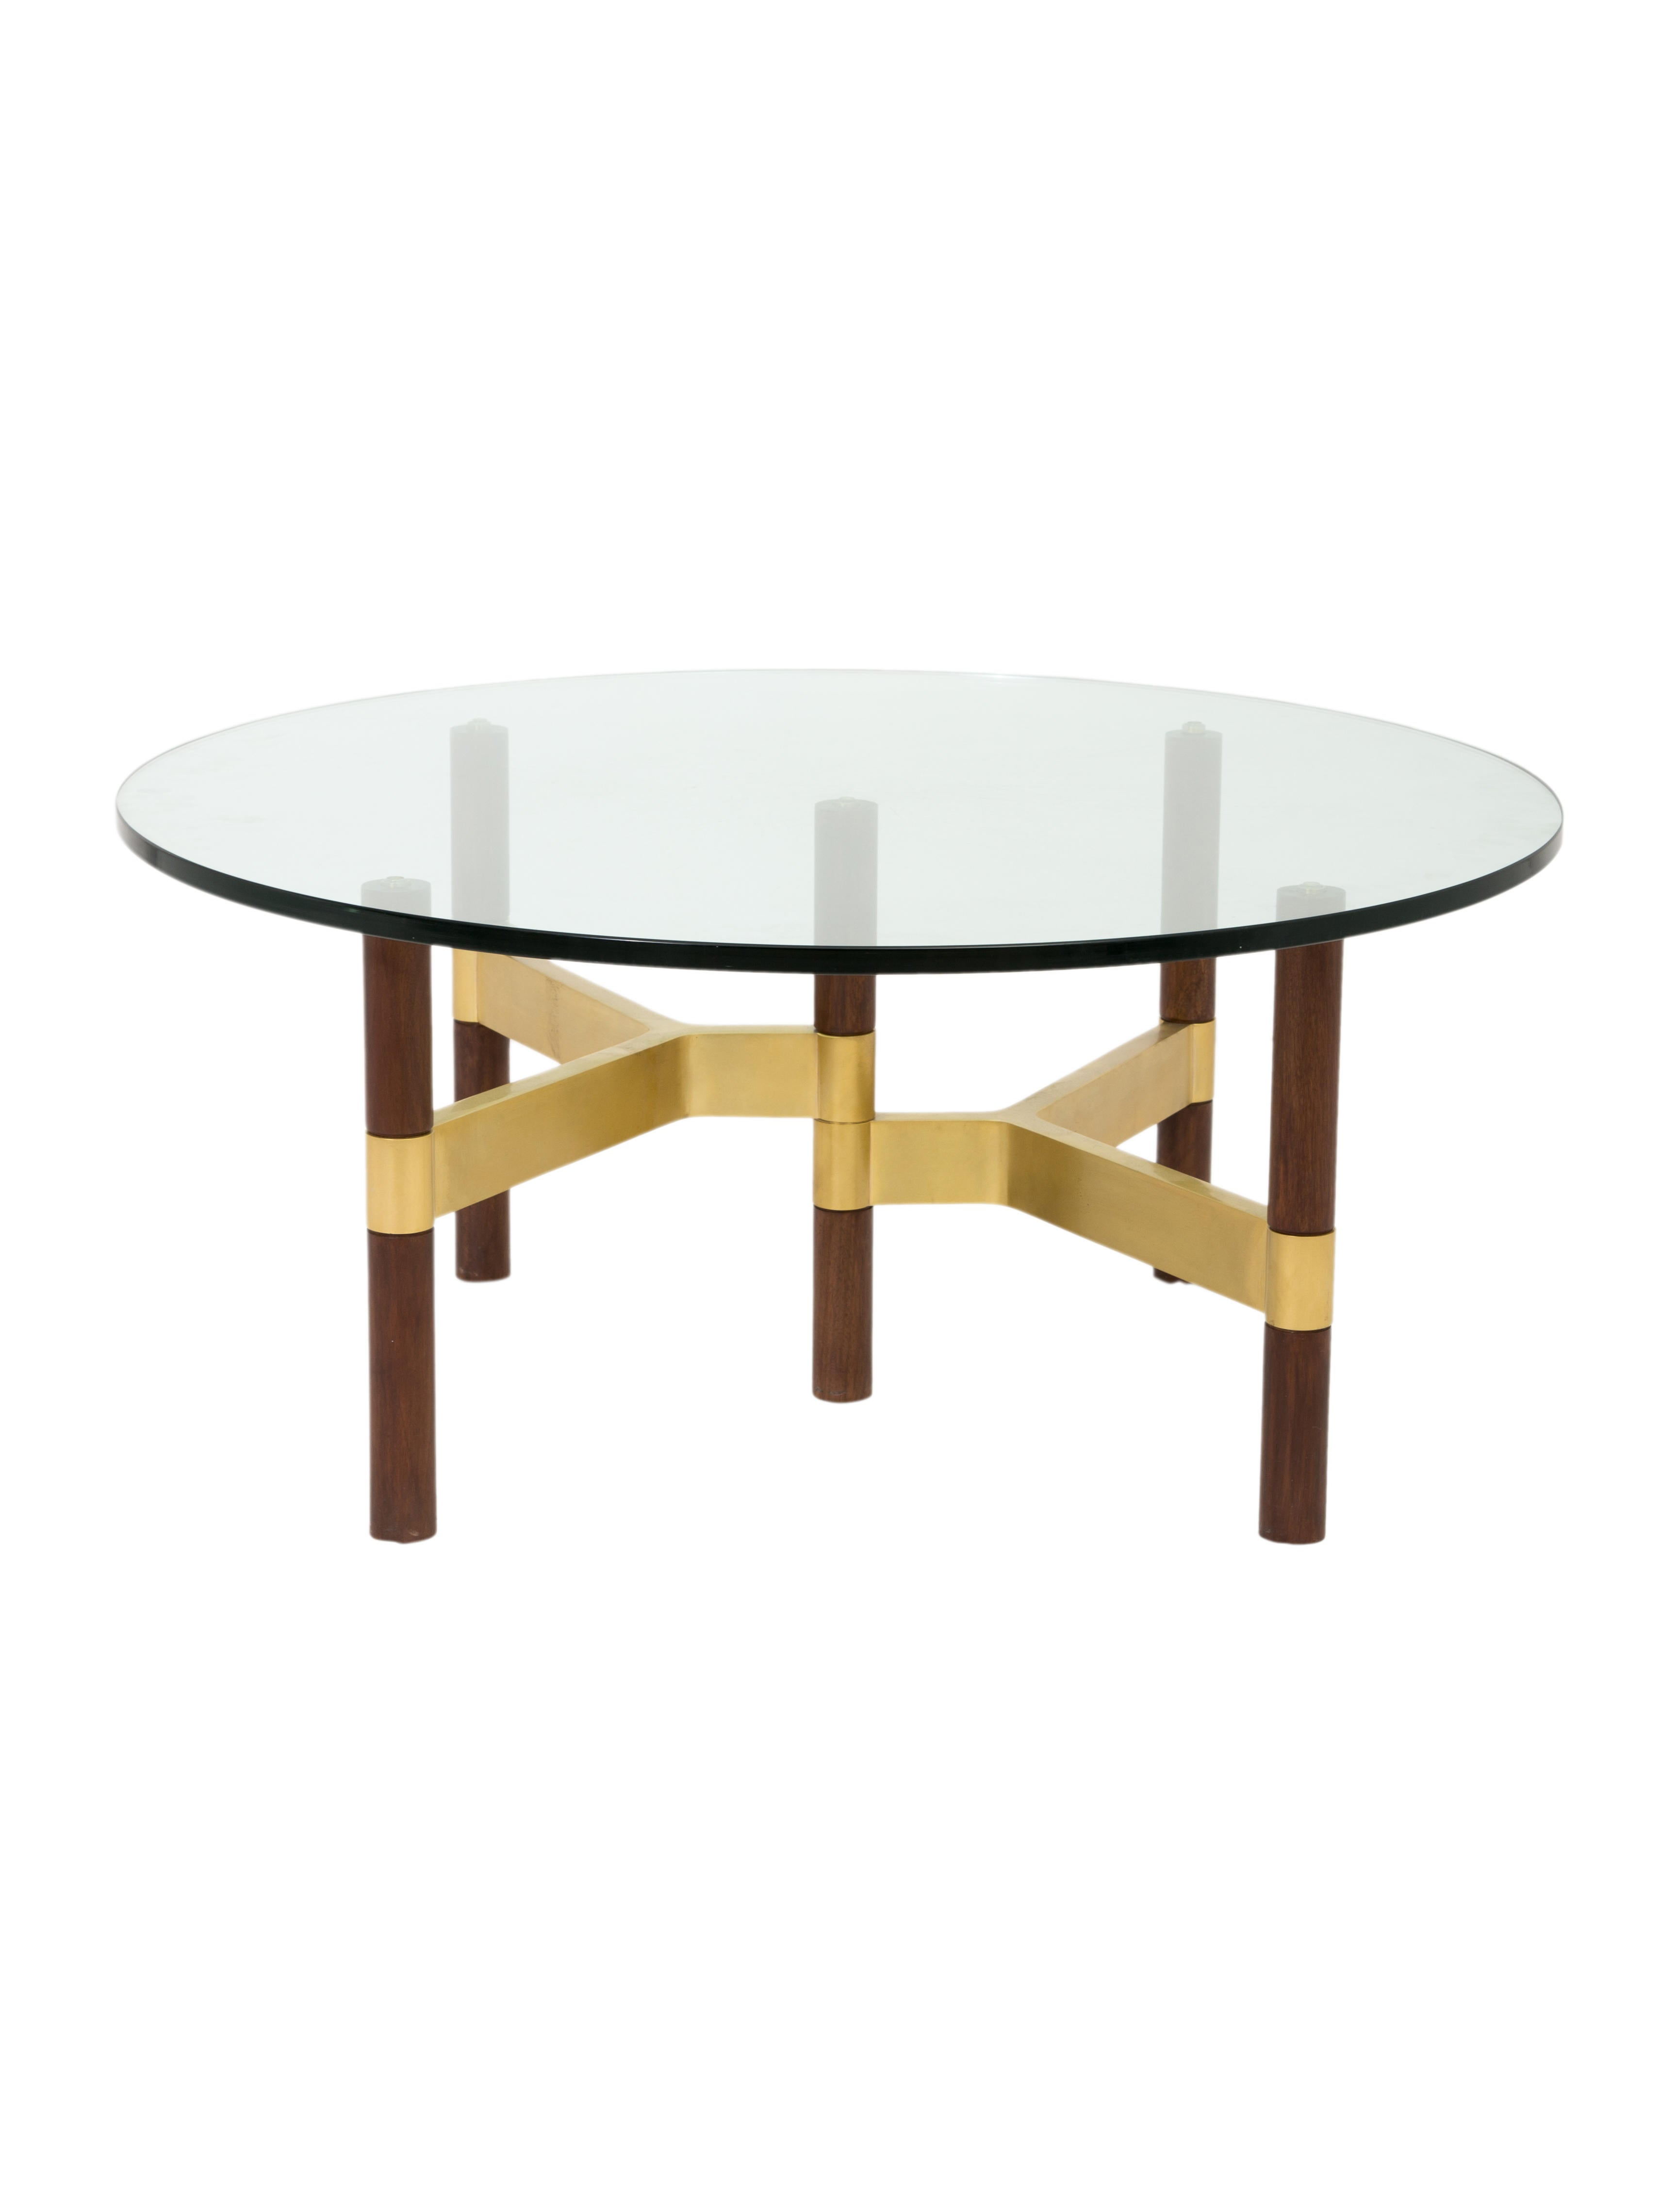 Design Within Reach Helix Coffee Table Furniture Deswr20007 The Realreal